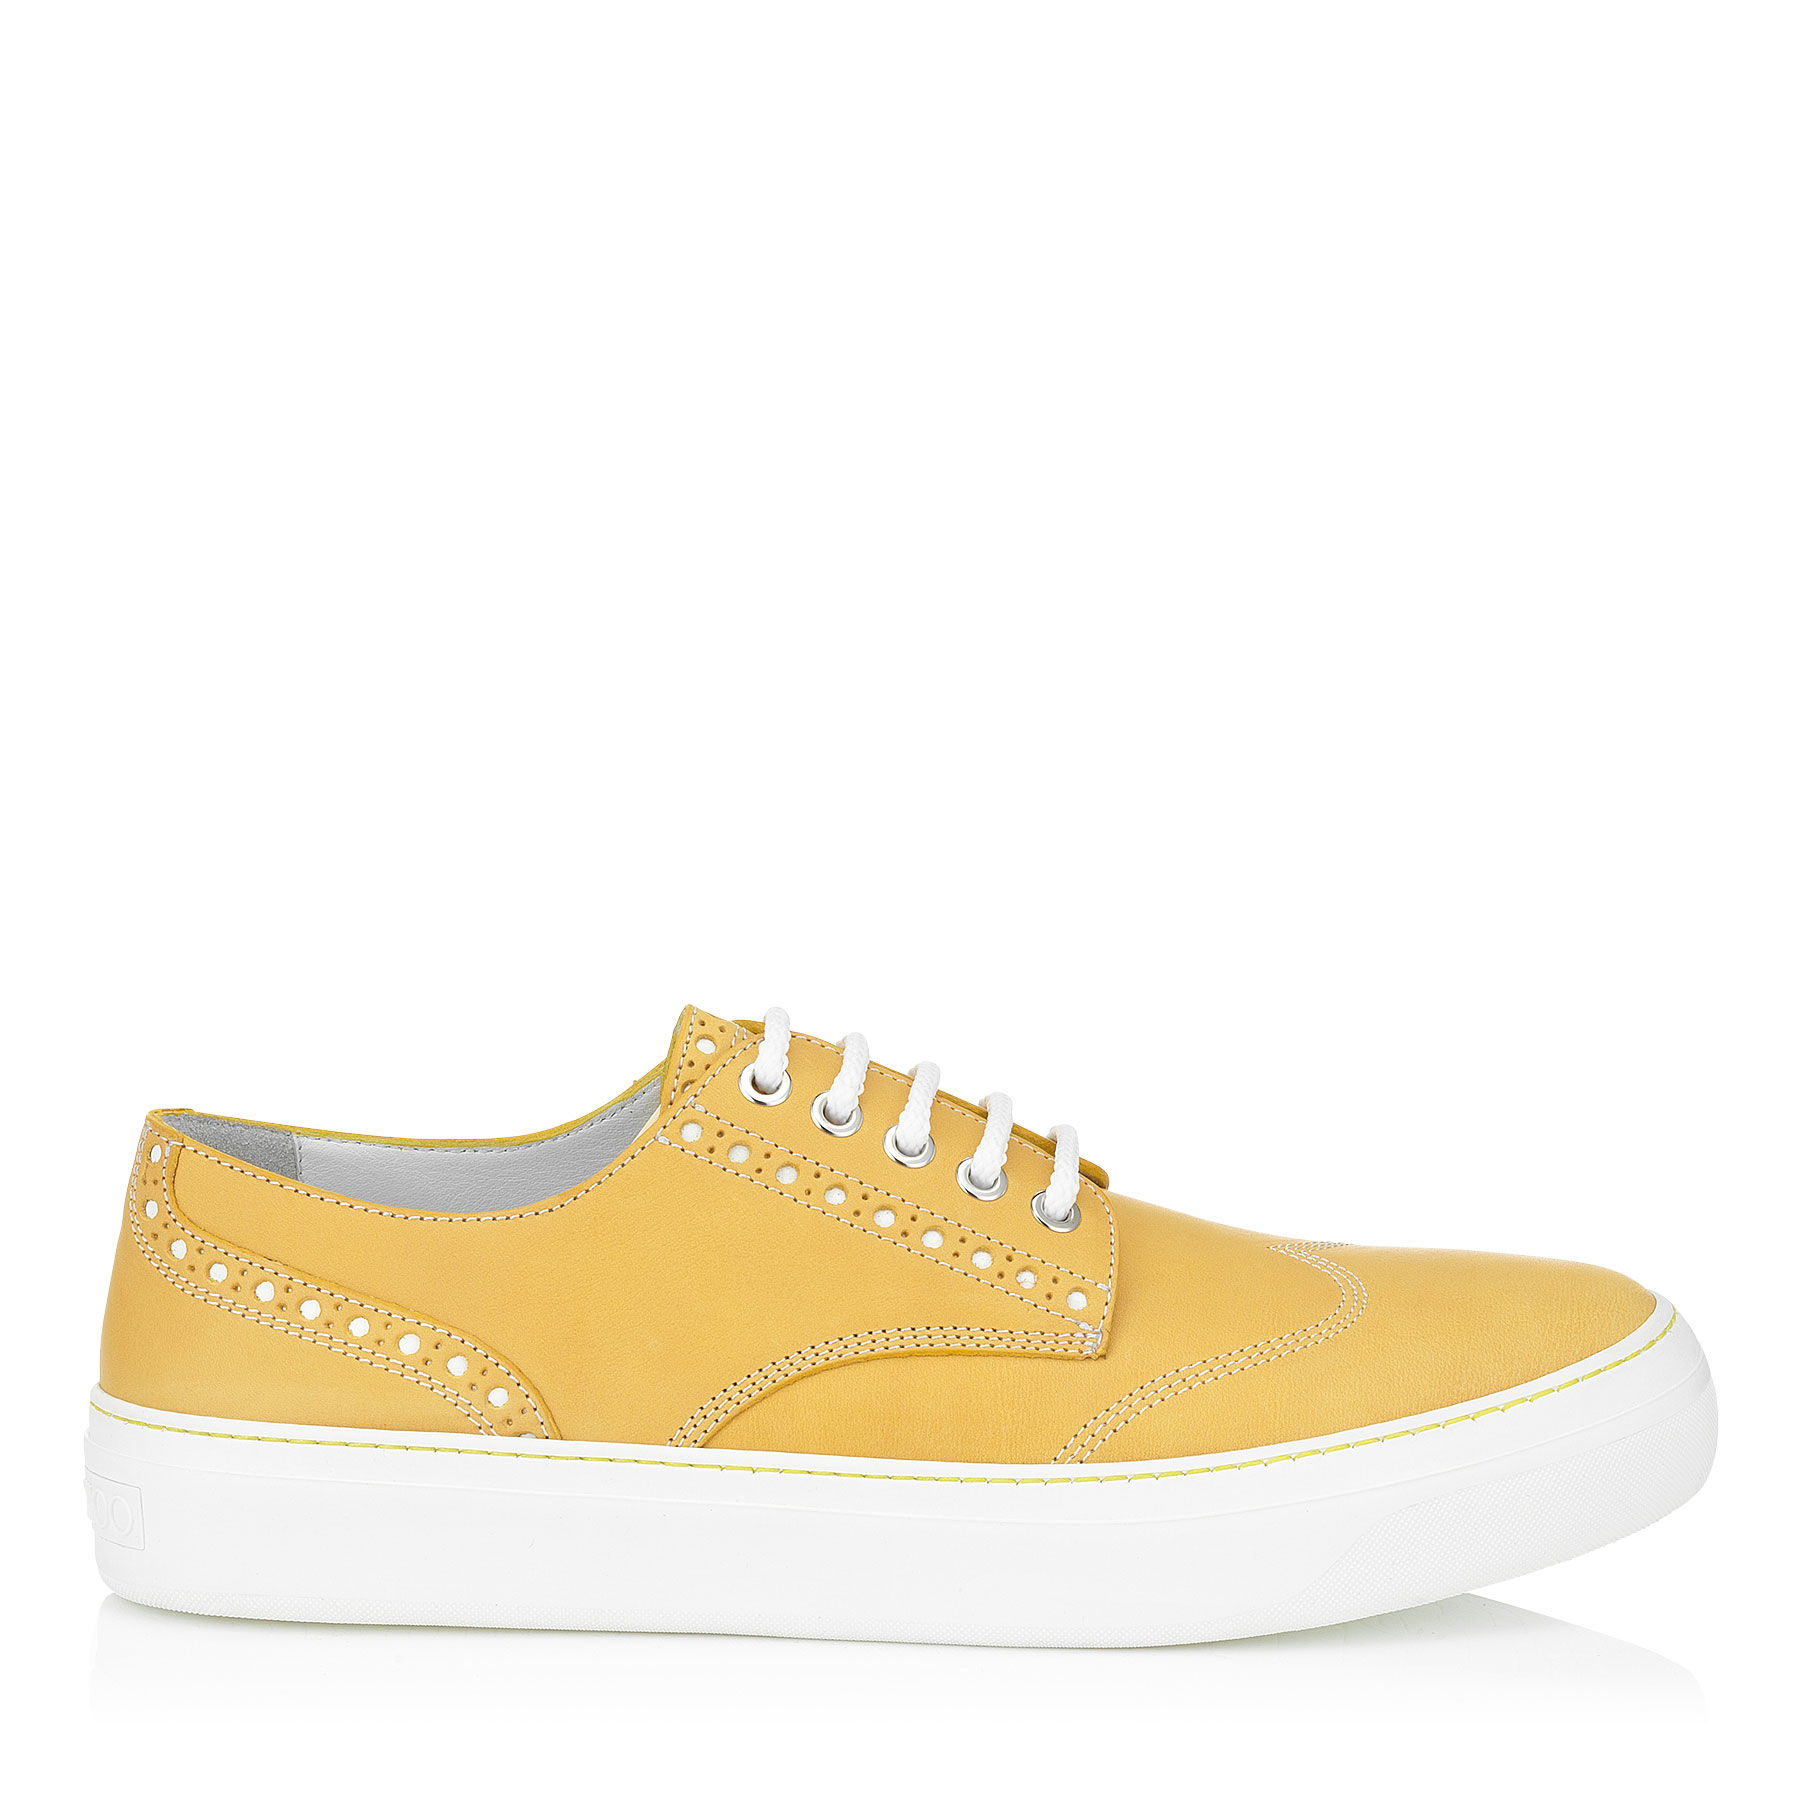 Jimmy Choo Reggy Canary Yellow Leather Trainers for Men